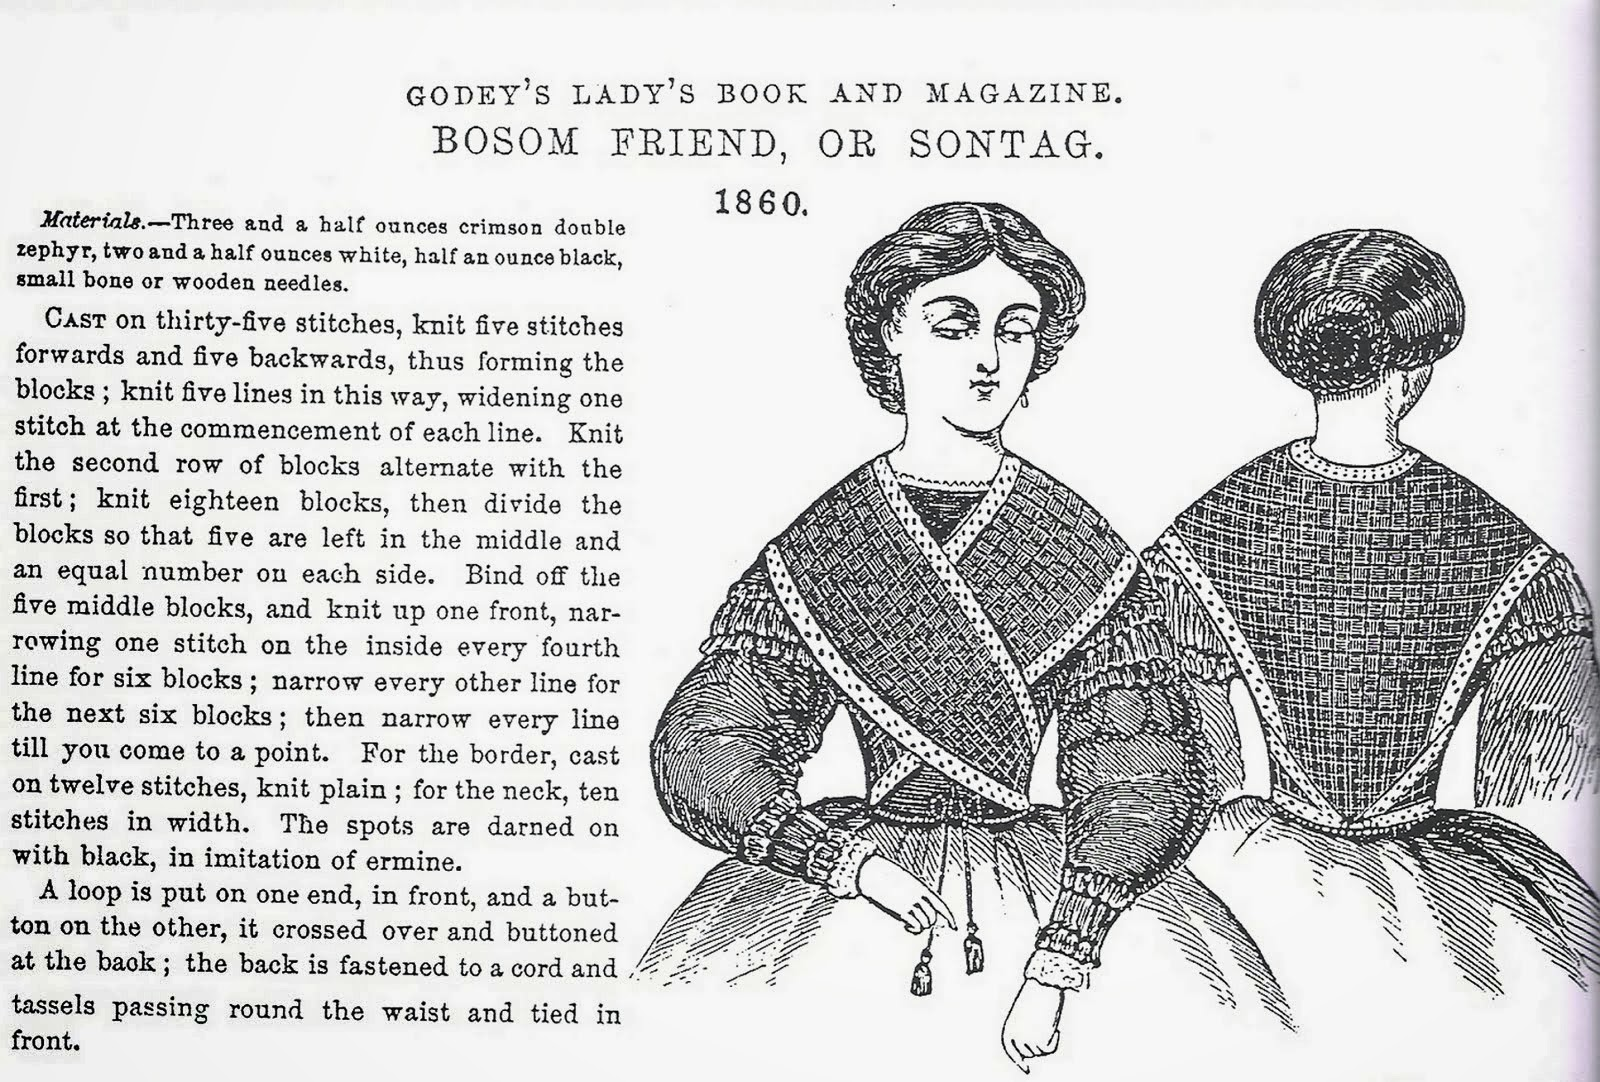 In the Swan's Shadow: Godey's sontag knitting instructions